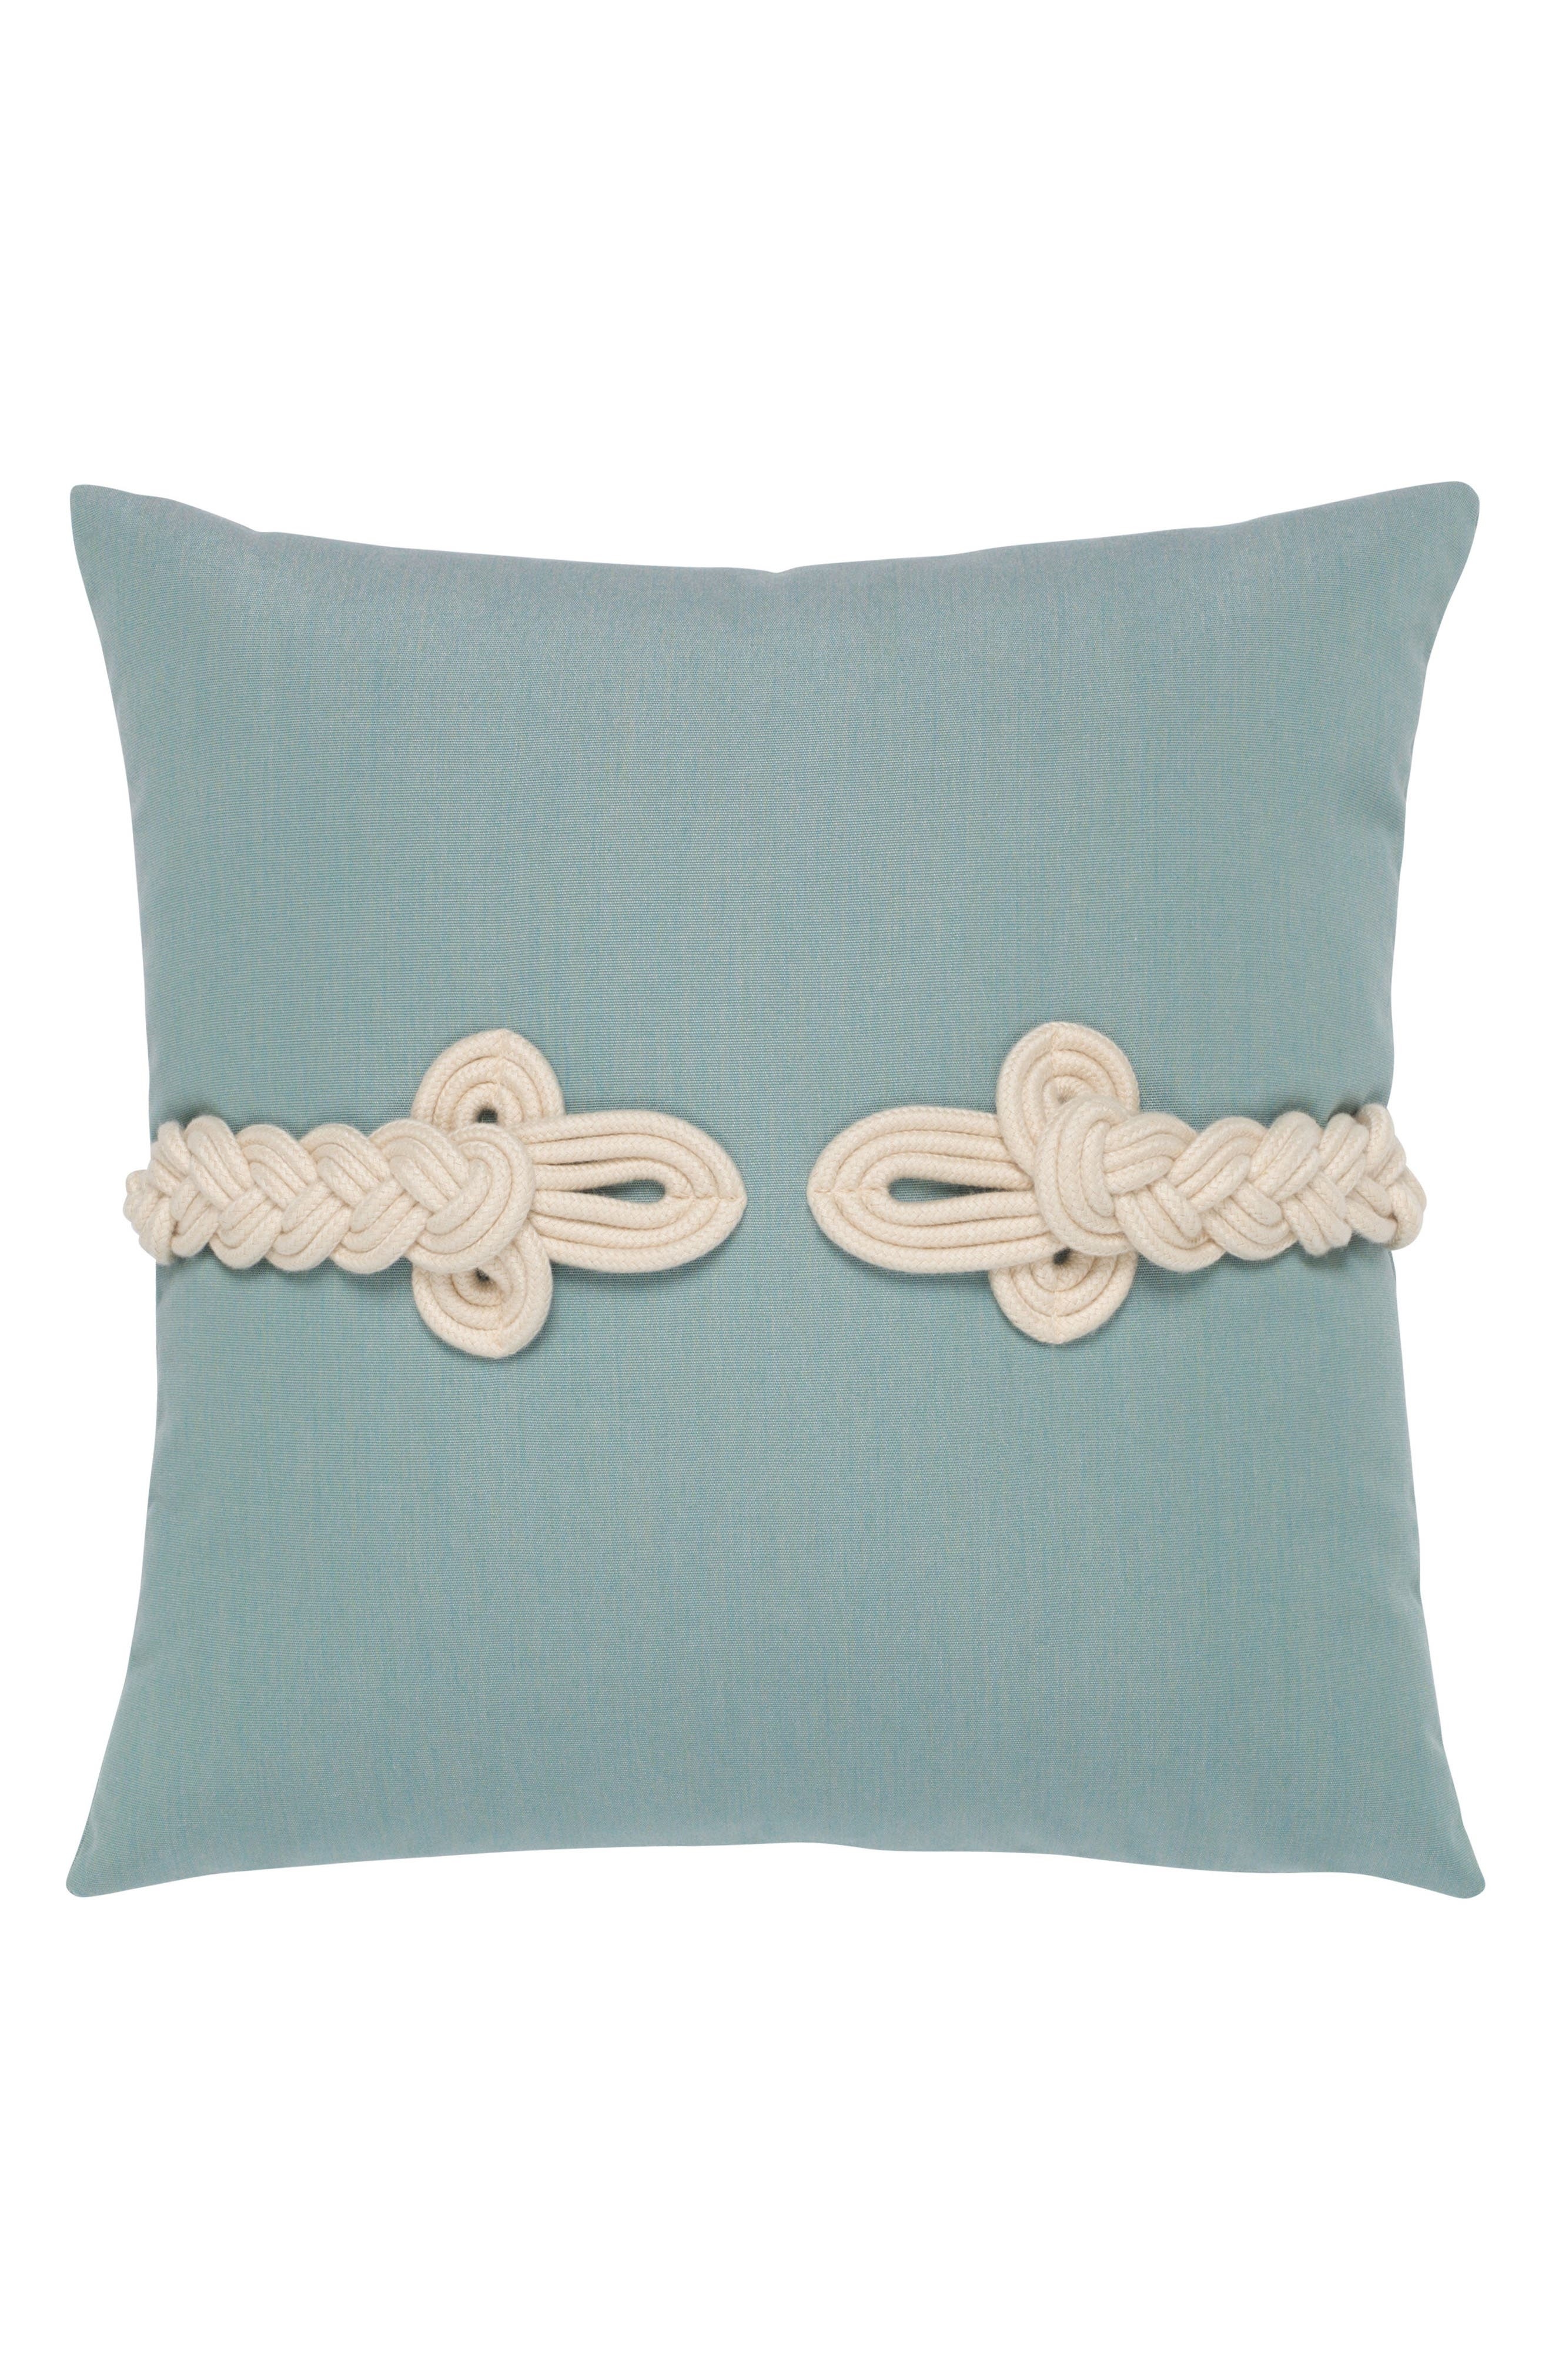 Frogs Clasp Indoor/Outdoor Accent Pillow,                             Main thumbnail 1, color,                             BLUE